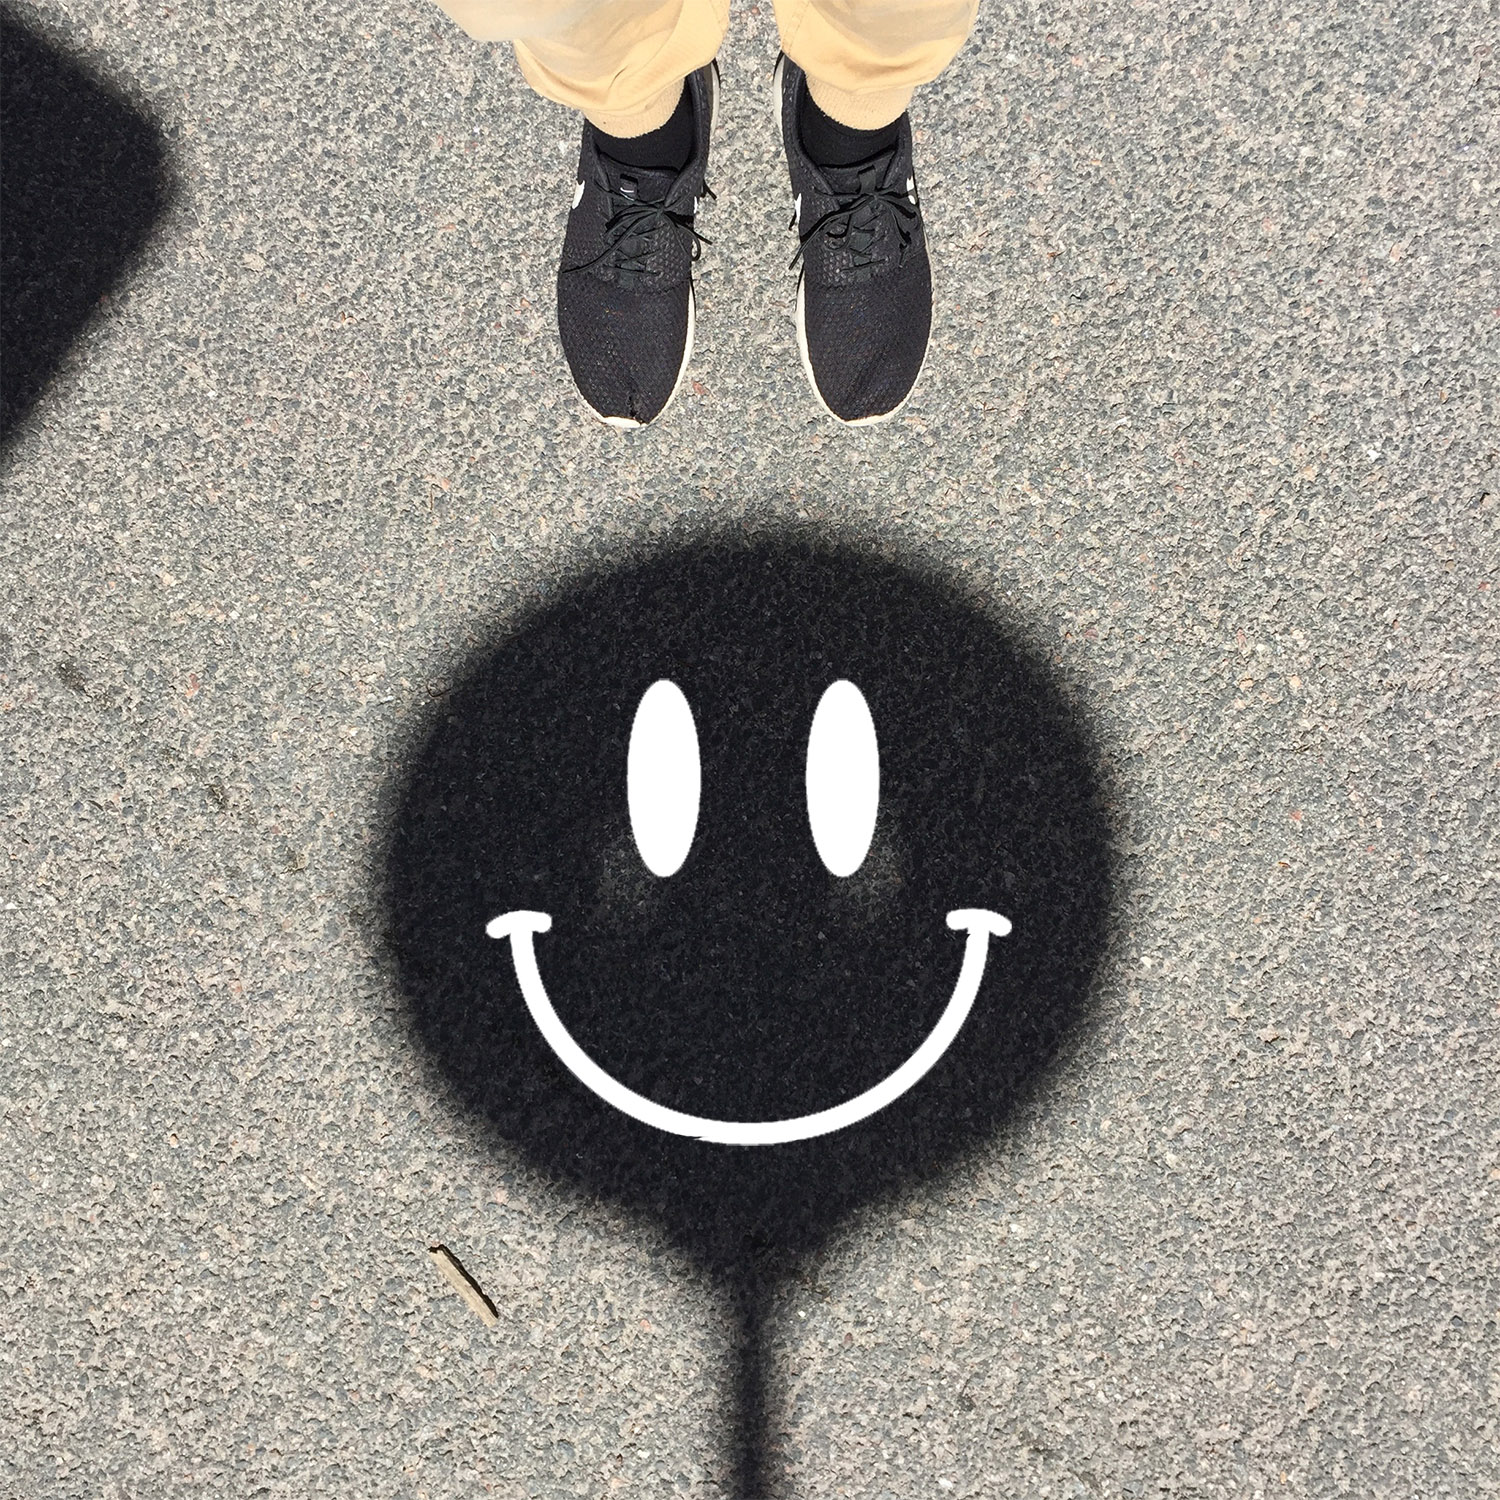 shadowsmiley2.jpg